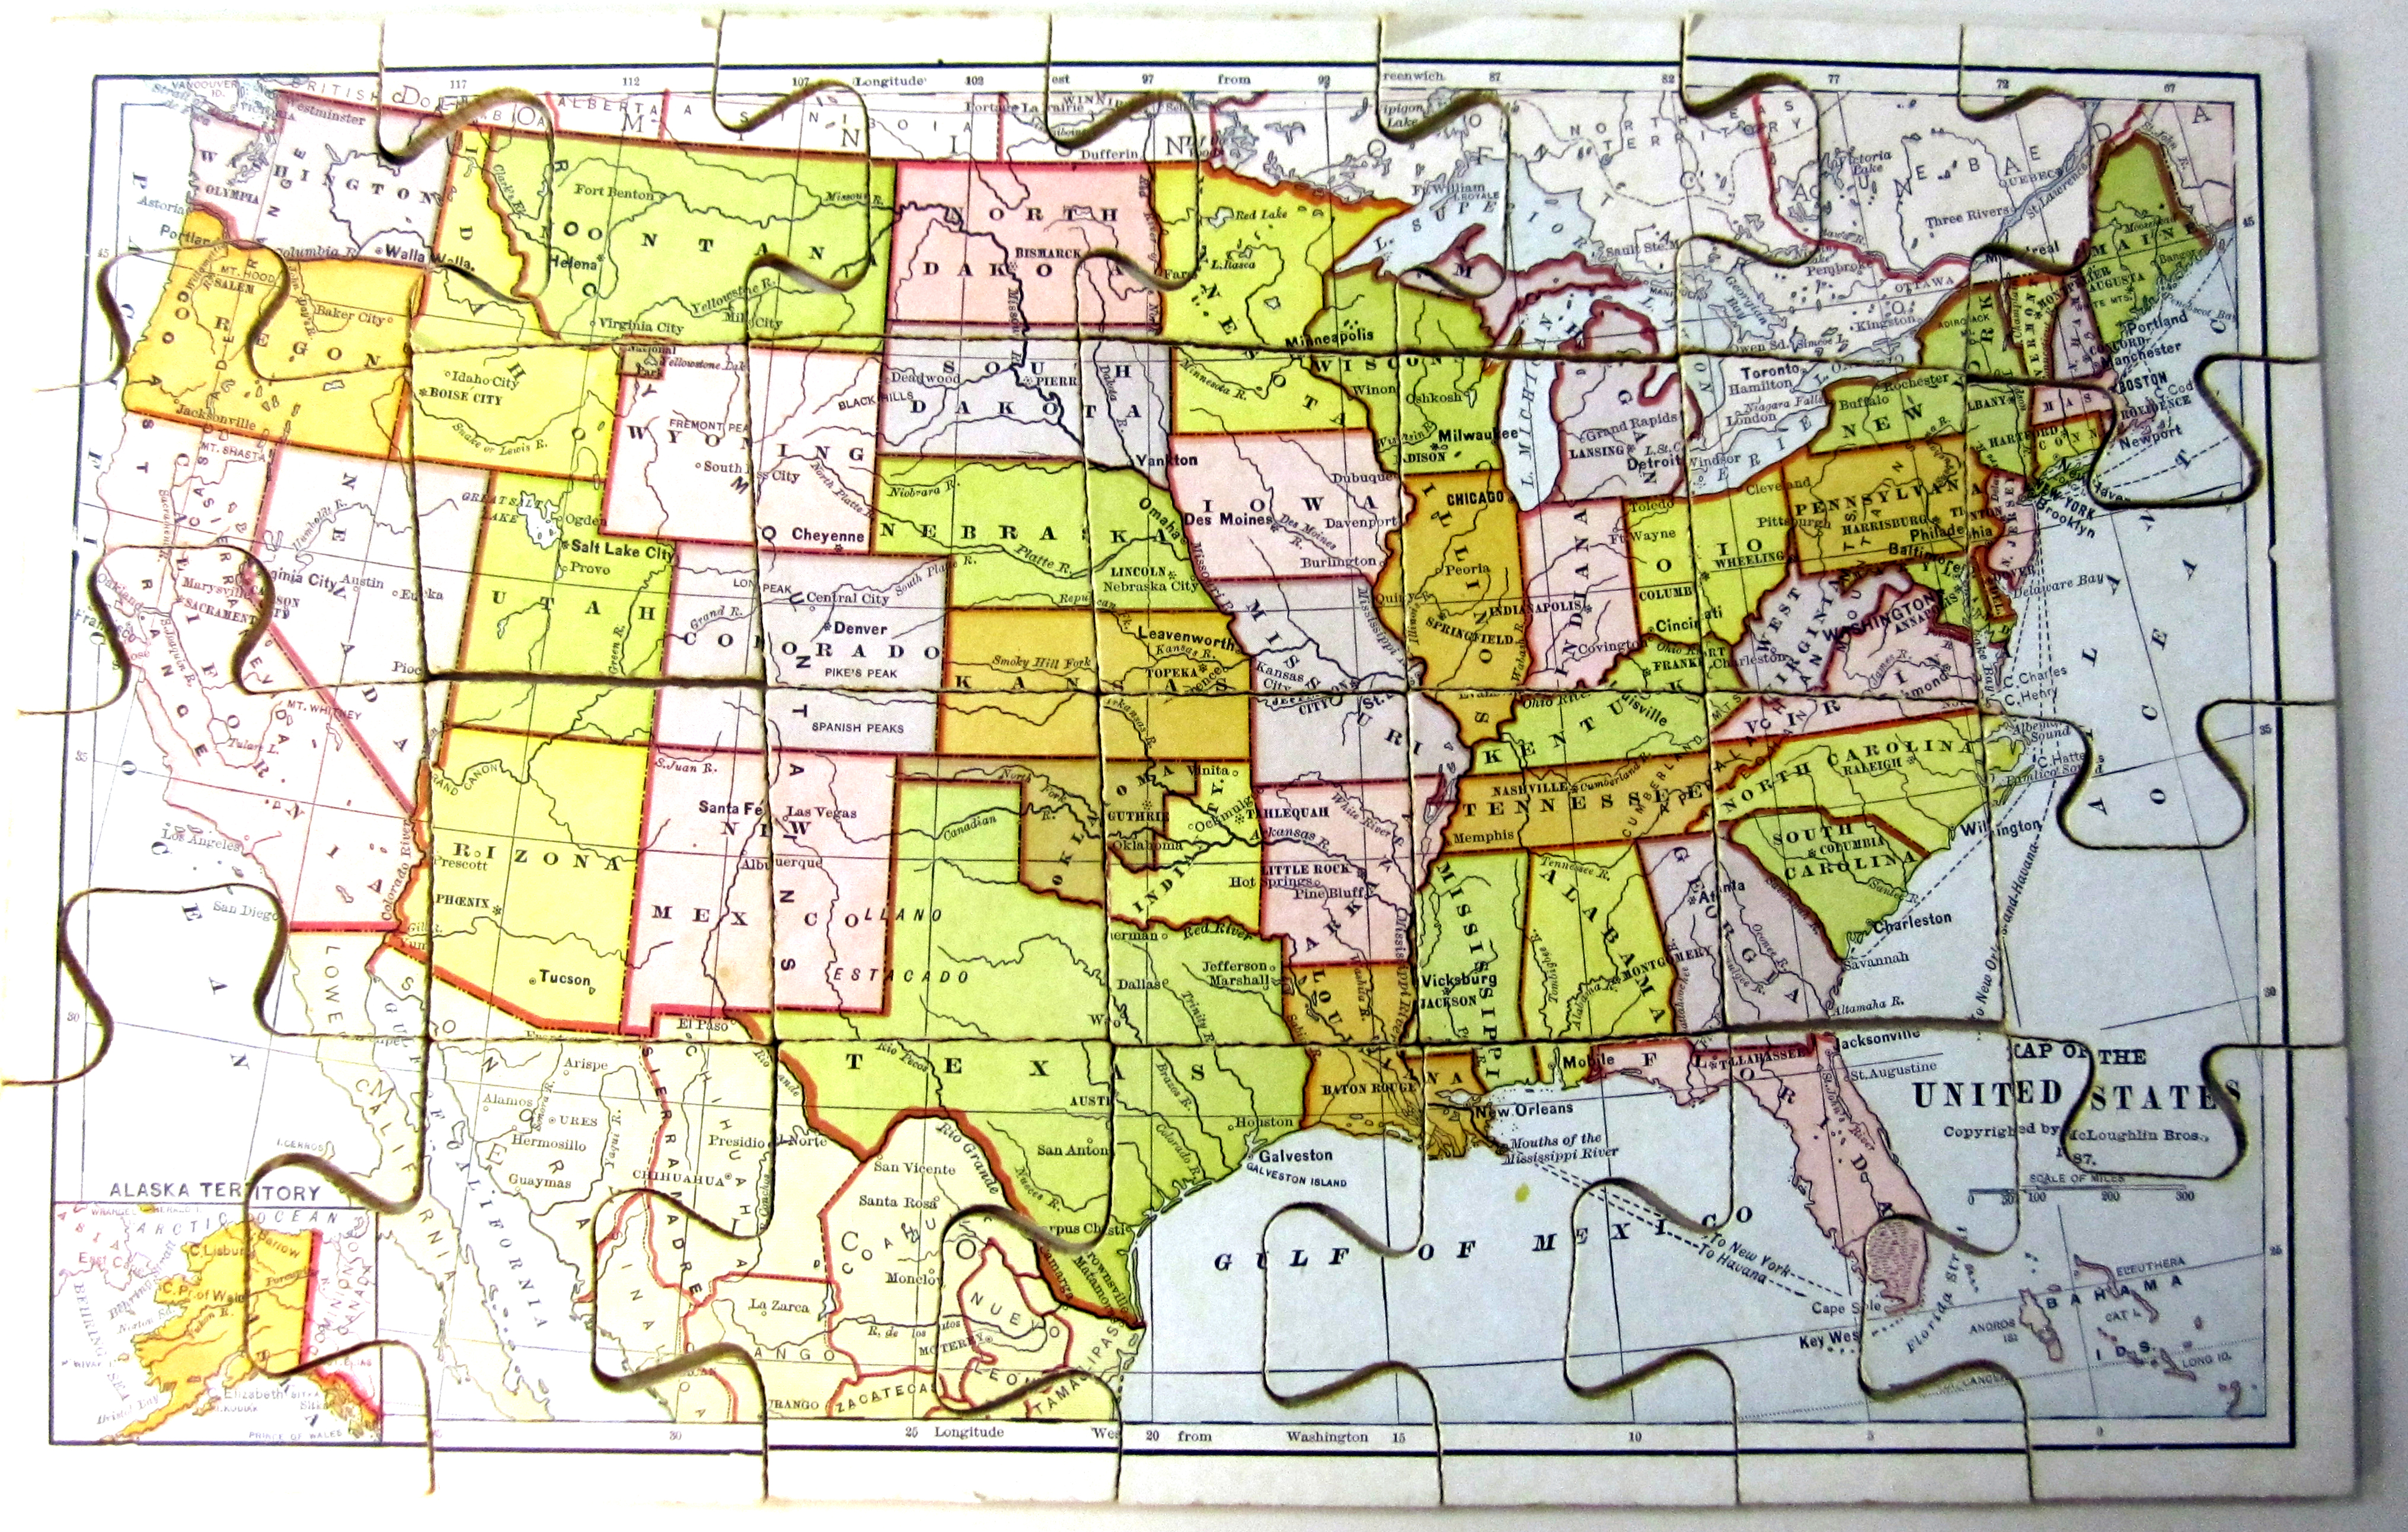 Map Of The United States Copyrighted By Mcloughlin Bros 1897 Jigsaw Puzzle Gift Of Richard J Levine